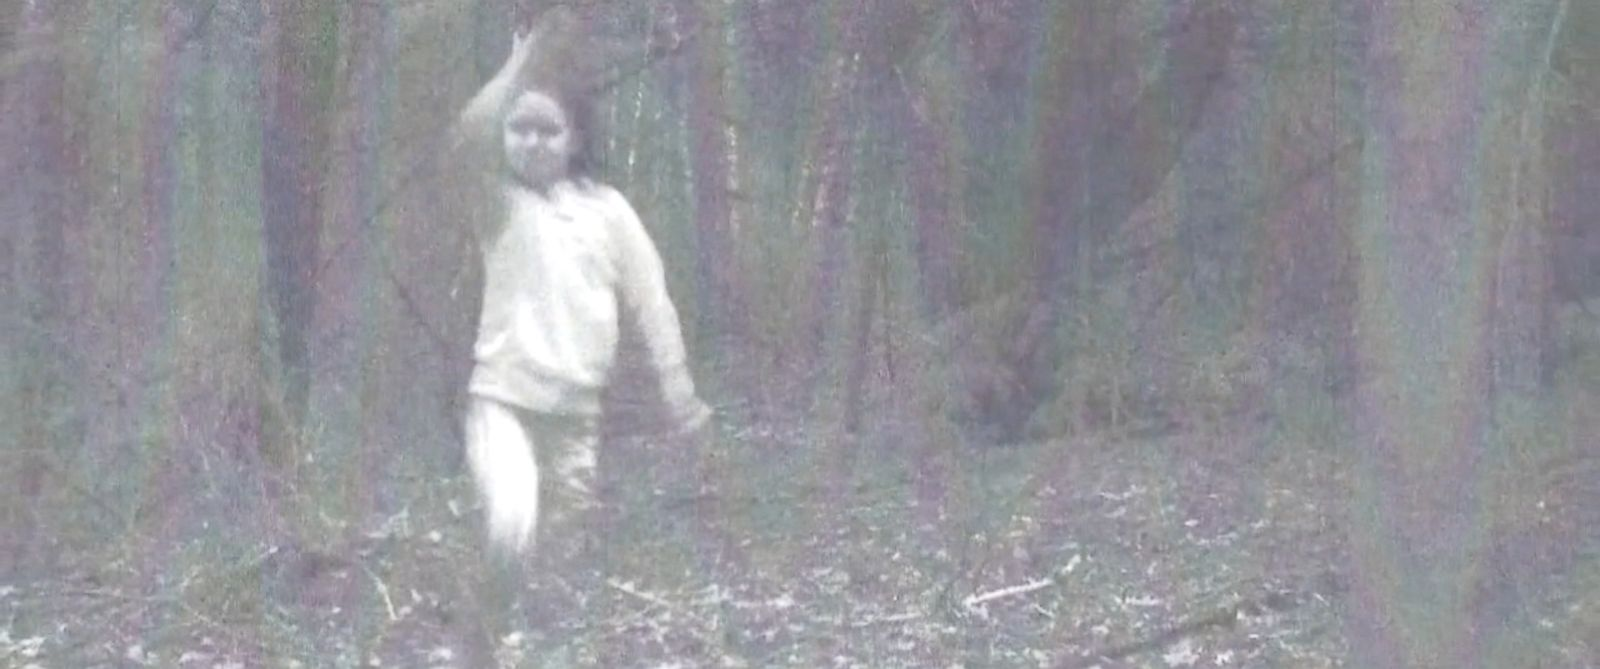 VIDEO: The blurry photo was captured by a camera in a wooded area in Cambridge, New York.